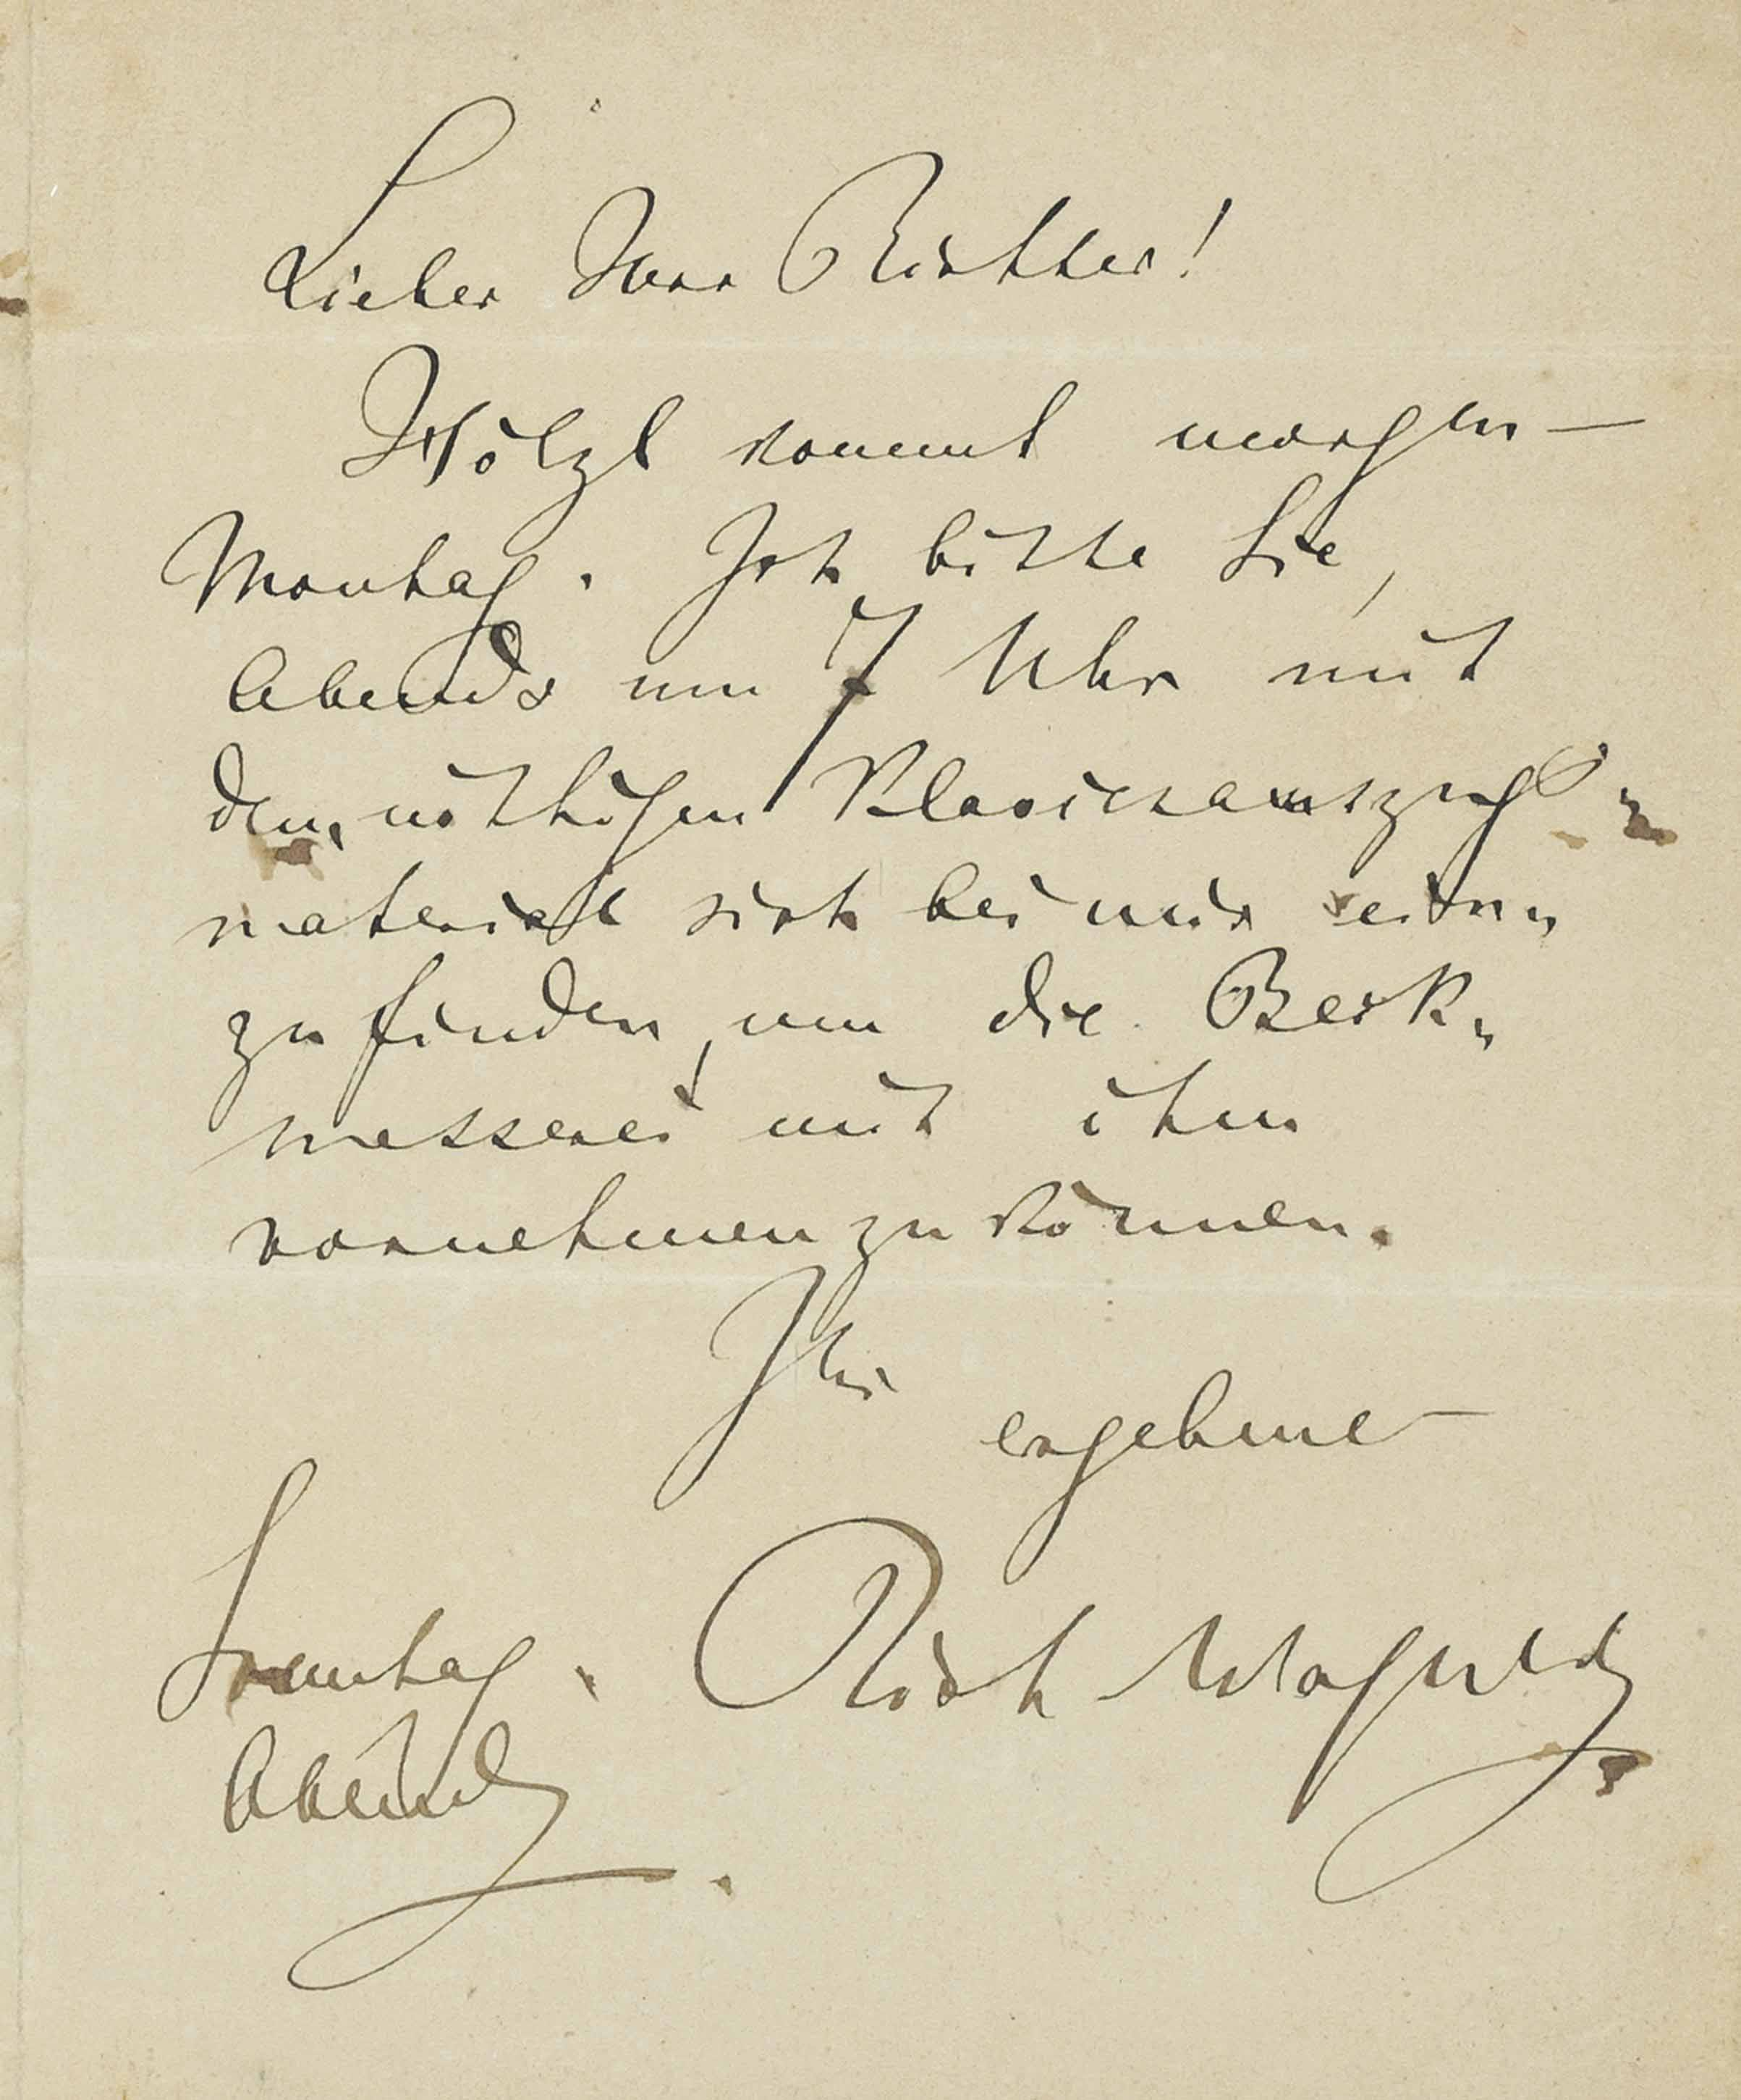 WAGNER, Richard (1813-1883). Autograph letter signed ('Rich. Wagner') to Hans Richter (here grandly entitled 'Oberhofgeneralmusikdirektor' on the address panel), n.p. [Munich], 'Sonntag Abend' [c.early June 1868], referring to rehearsals for the first performance of Meistersinger, with Gustav Hölzel in the role of Beckmesser, 'Hölzl [sic] kommt morgen – Montag. Ich bitte Sie, Abends um 7 Uhr mit dem nöthigen Klavierauszugsmaterial sich bei mir einzufinden, um die Beckmesserei mit ihm vornehmen zu können (Hölzl comes tomorrow – Monday. I beg you to come to my house at 7 o'clock in the evening with the necessary piano score, so as to be able to deal with the Beckmesser bits [Beckmesserei] with him)', one page, 12mo (140 x 105mm), integral address leaf, remnant of seal (seal tear), framed and glazed, unexamined out of frame; with ten related photographs and other items. Provenance: given to Sir Herbert Hugh Harvey by Edgar Richter, 18 May 1937 (annotation on verso of frame); two signed photographs (one in costume) and a Christmas card signed by Edgar Richter accompany the lot.